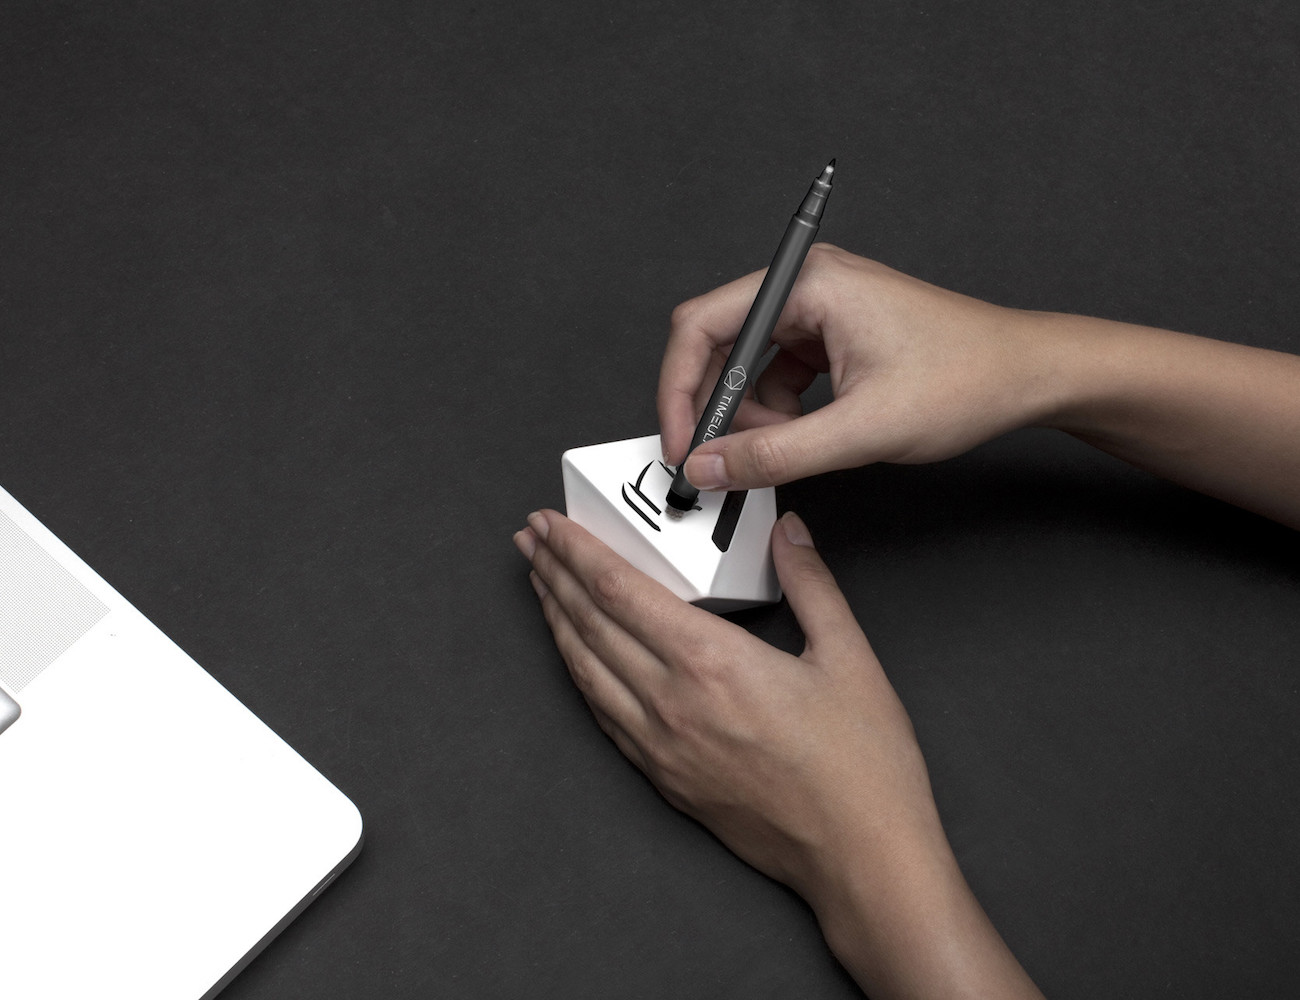 Track Your Time With The Roll Of A Dice